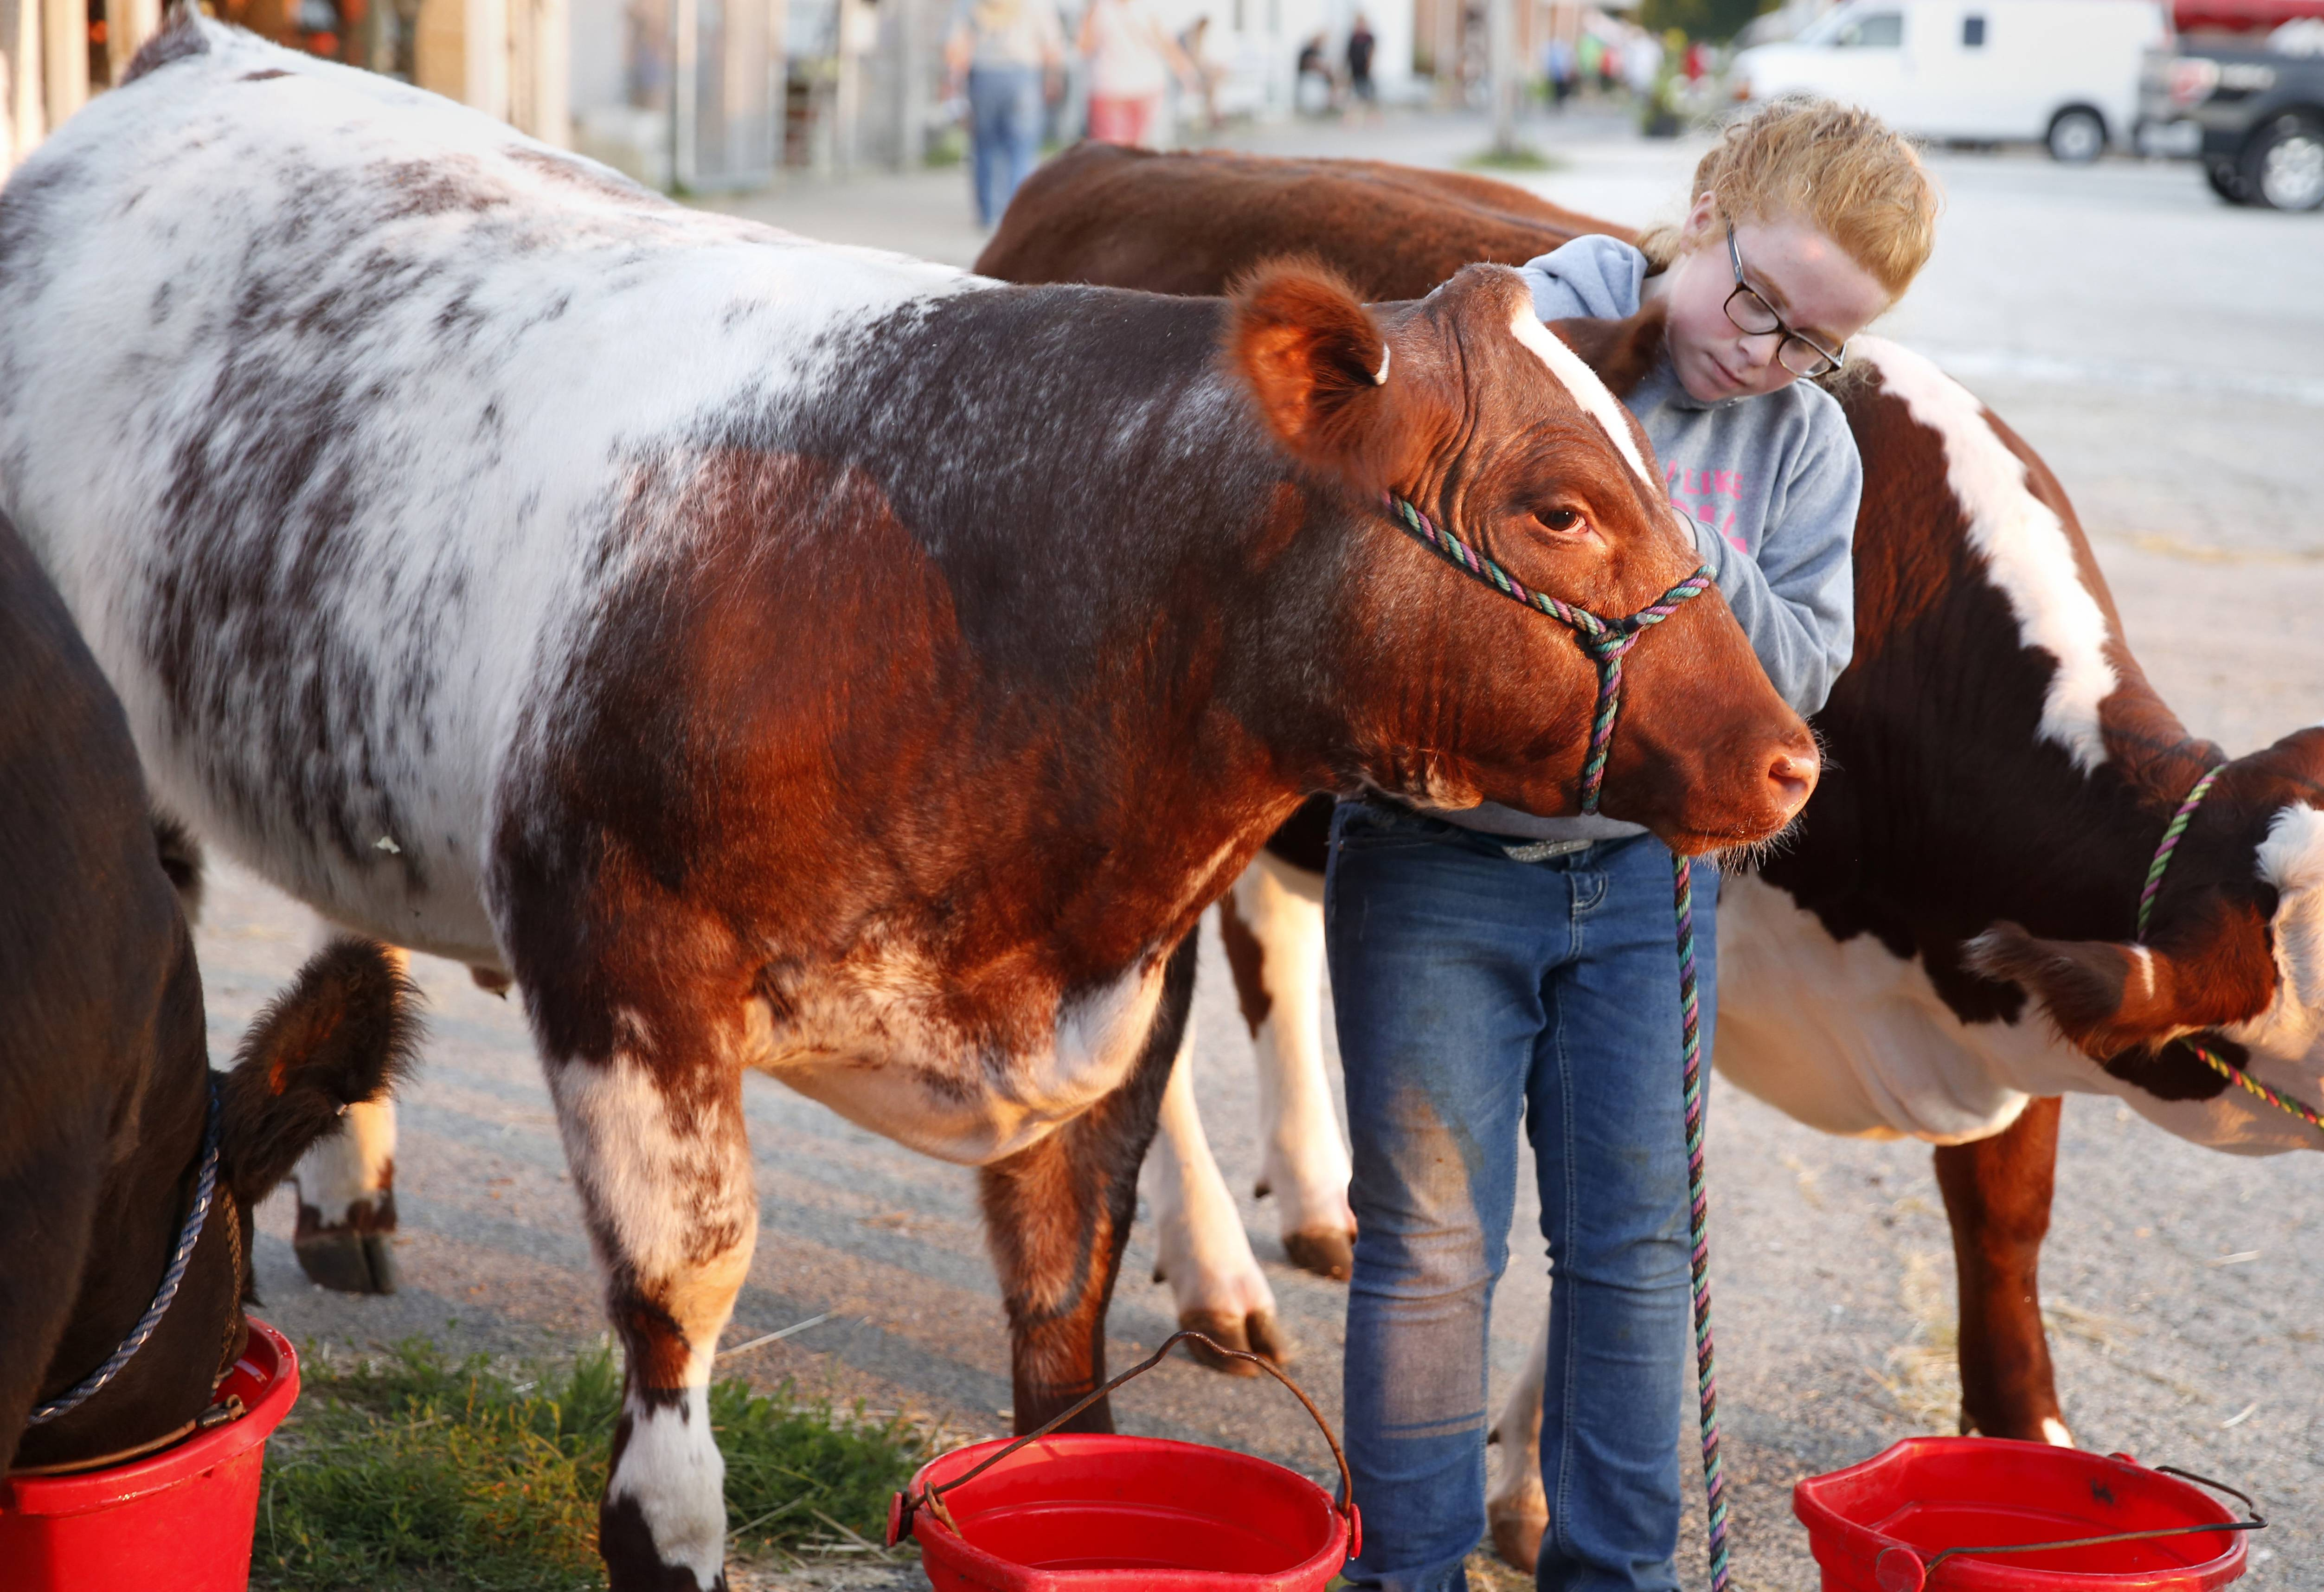 DuPage County Fair organizers say barns were packed with show animals. Brooklynn Hulmes of Lee, Illinois, entered her steers in the competitions.